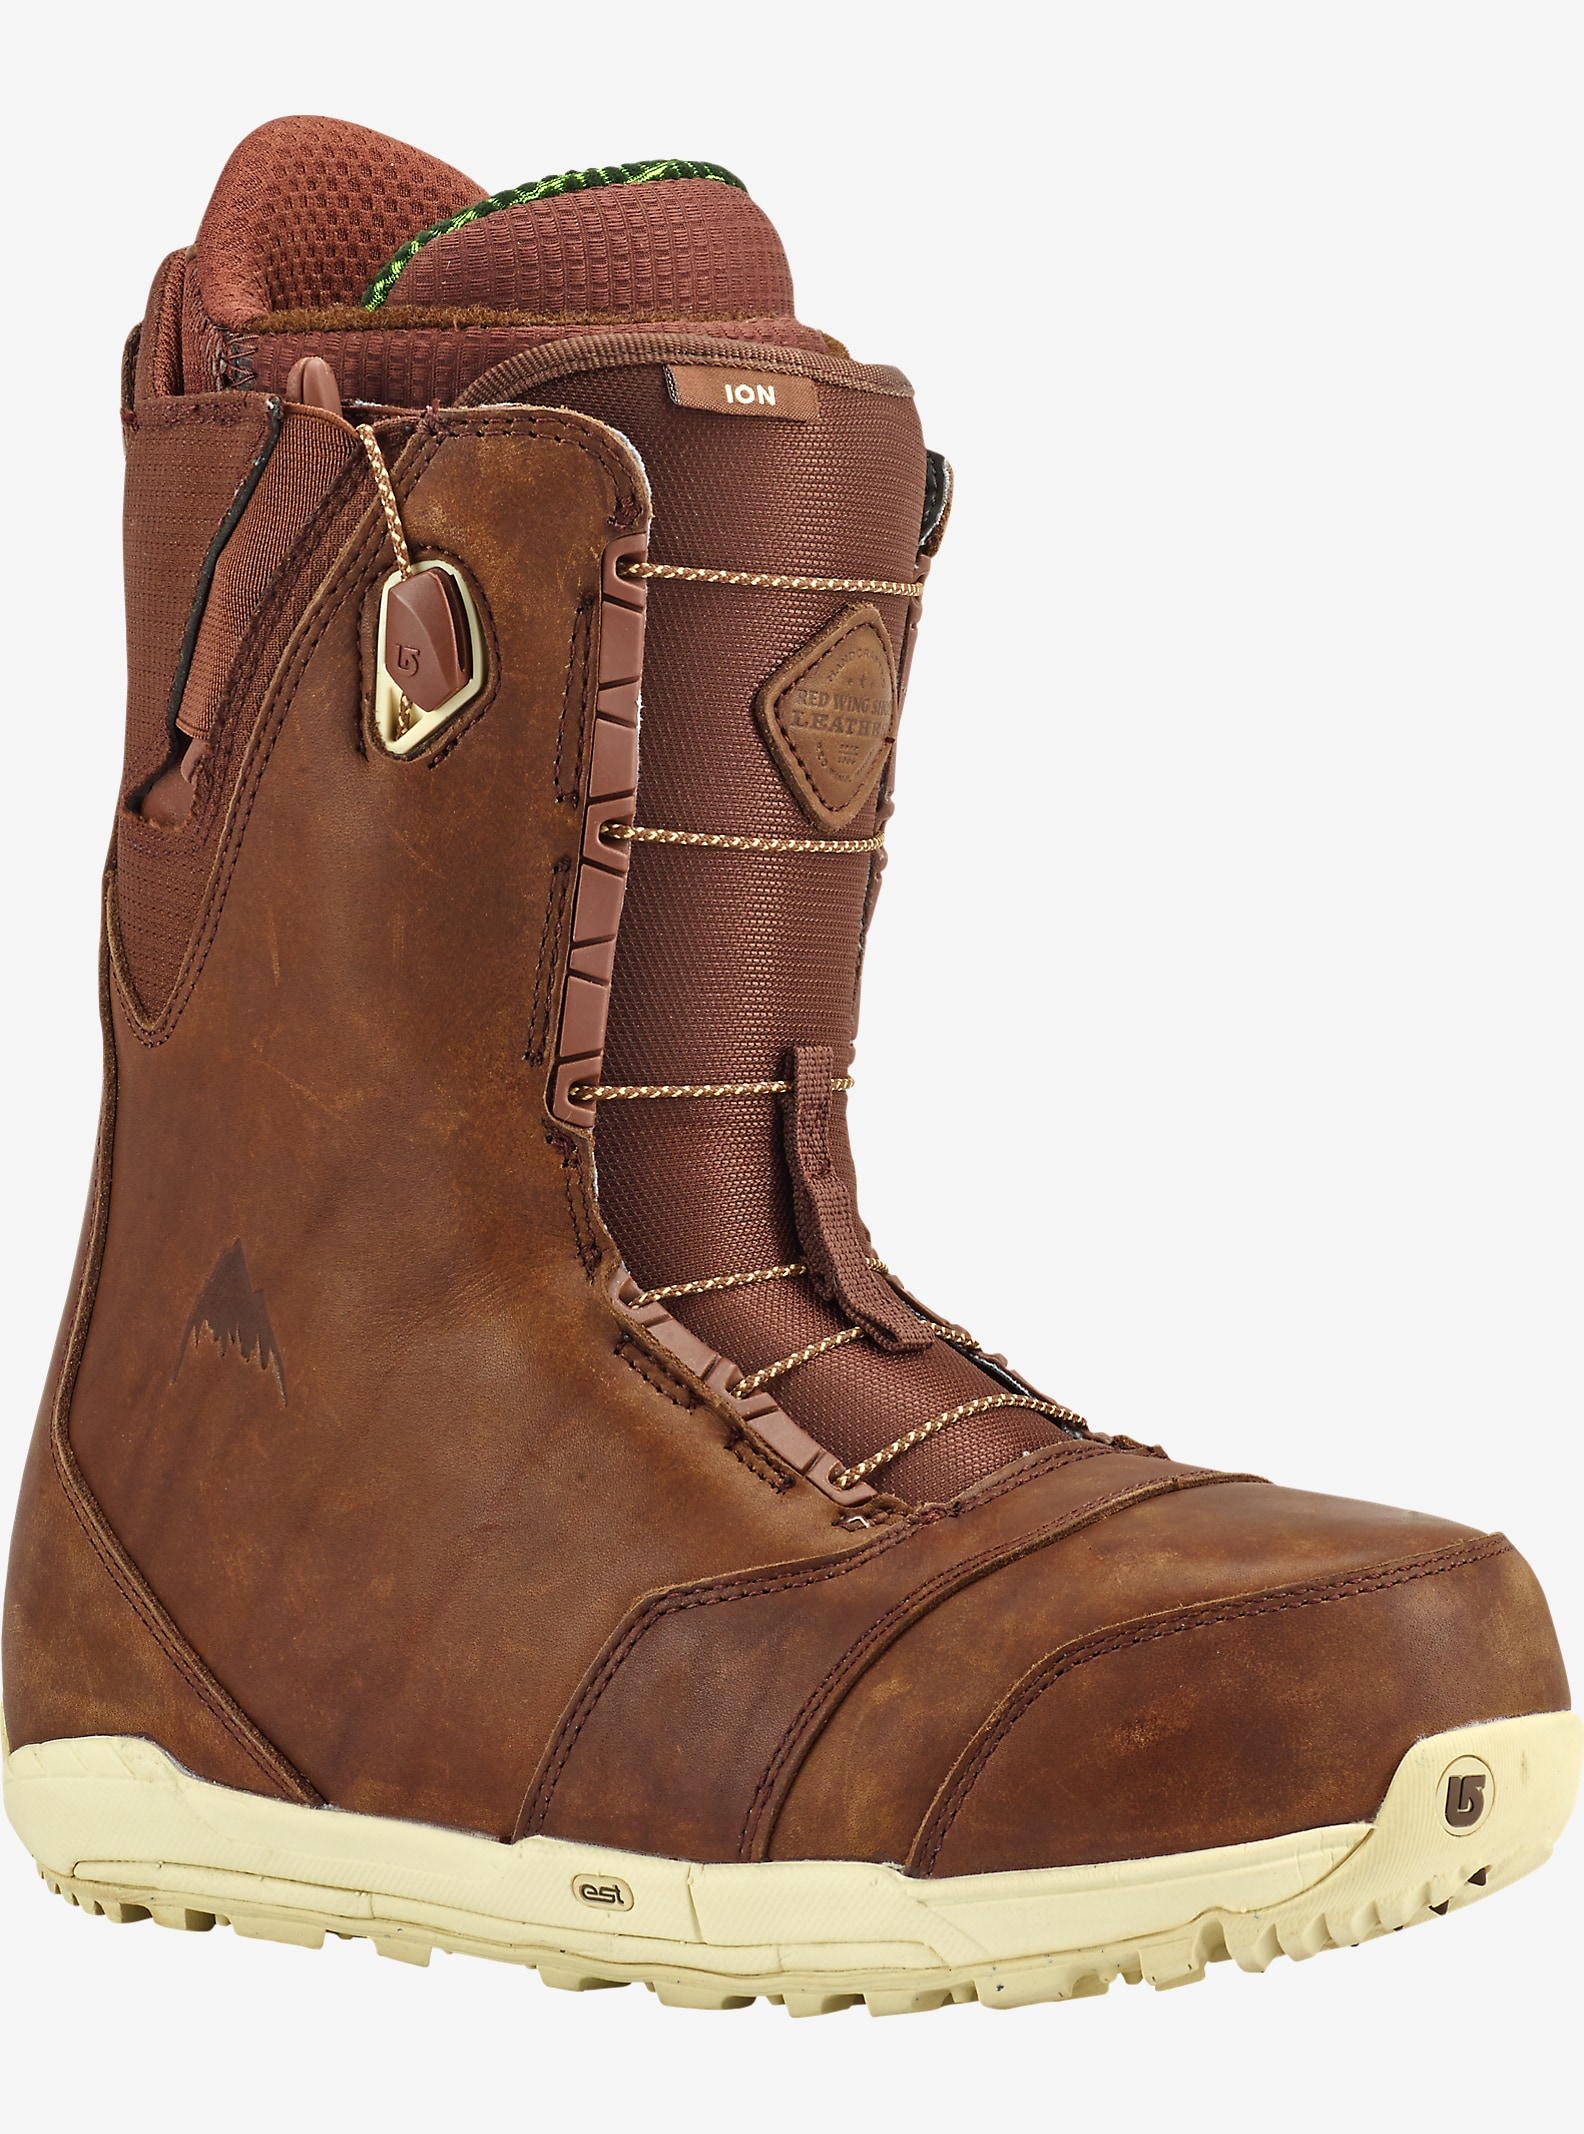 Mens leather gloves boss - Red Wing X Burton Ion Leather Snowboard Boot Shown In Red Wing